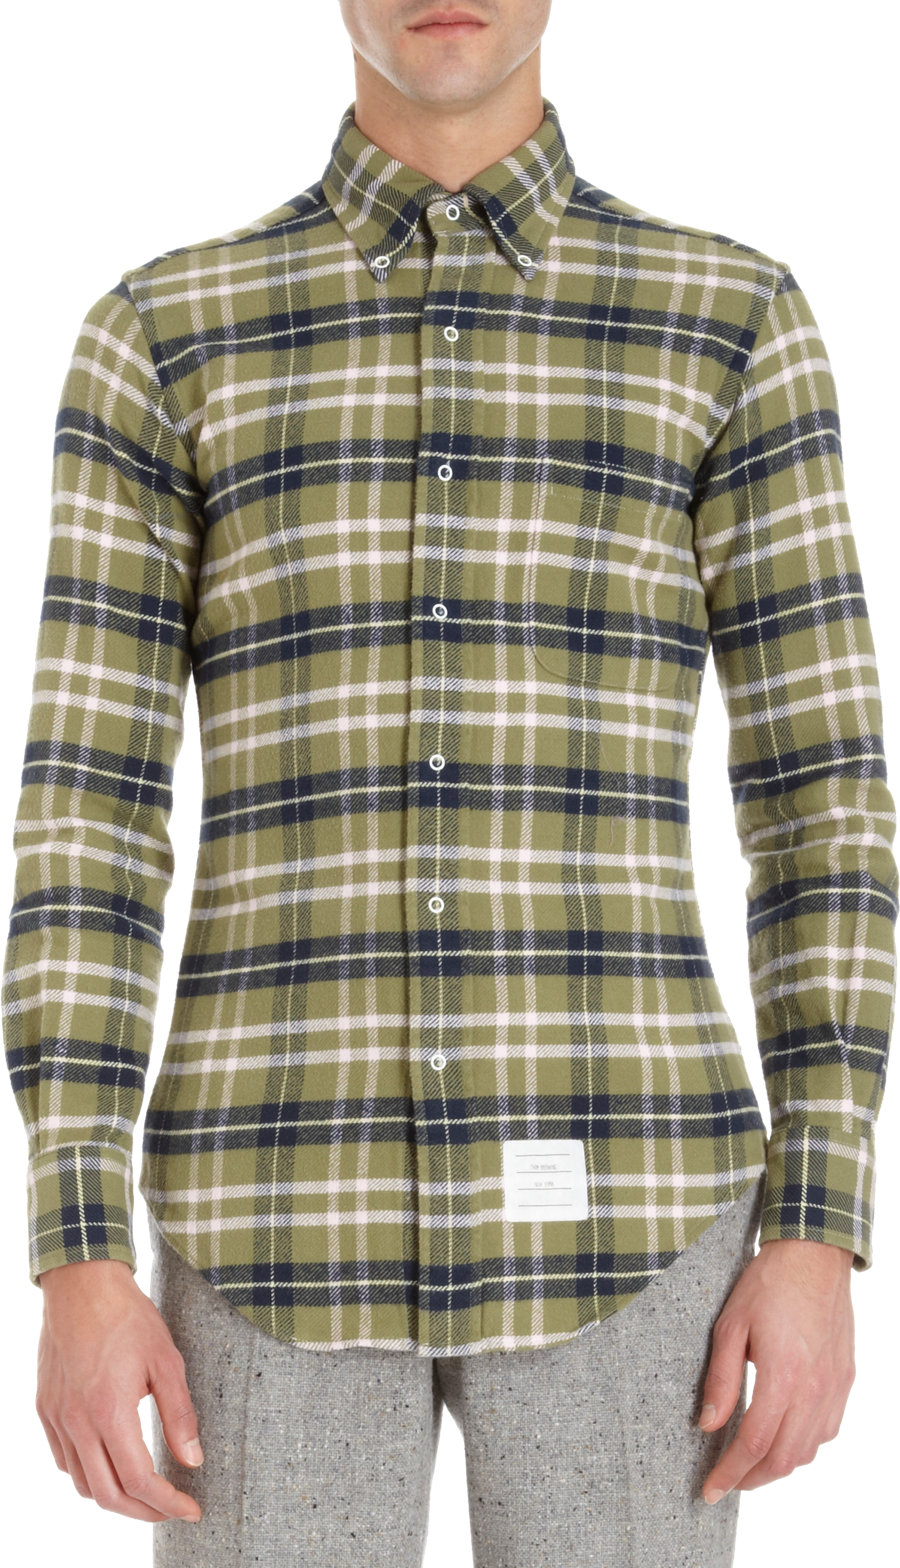 Thom Browne Plaid Shirt With Snap Closures In Green For